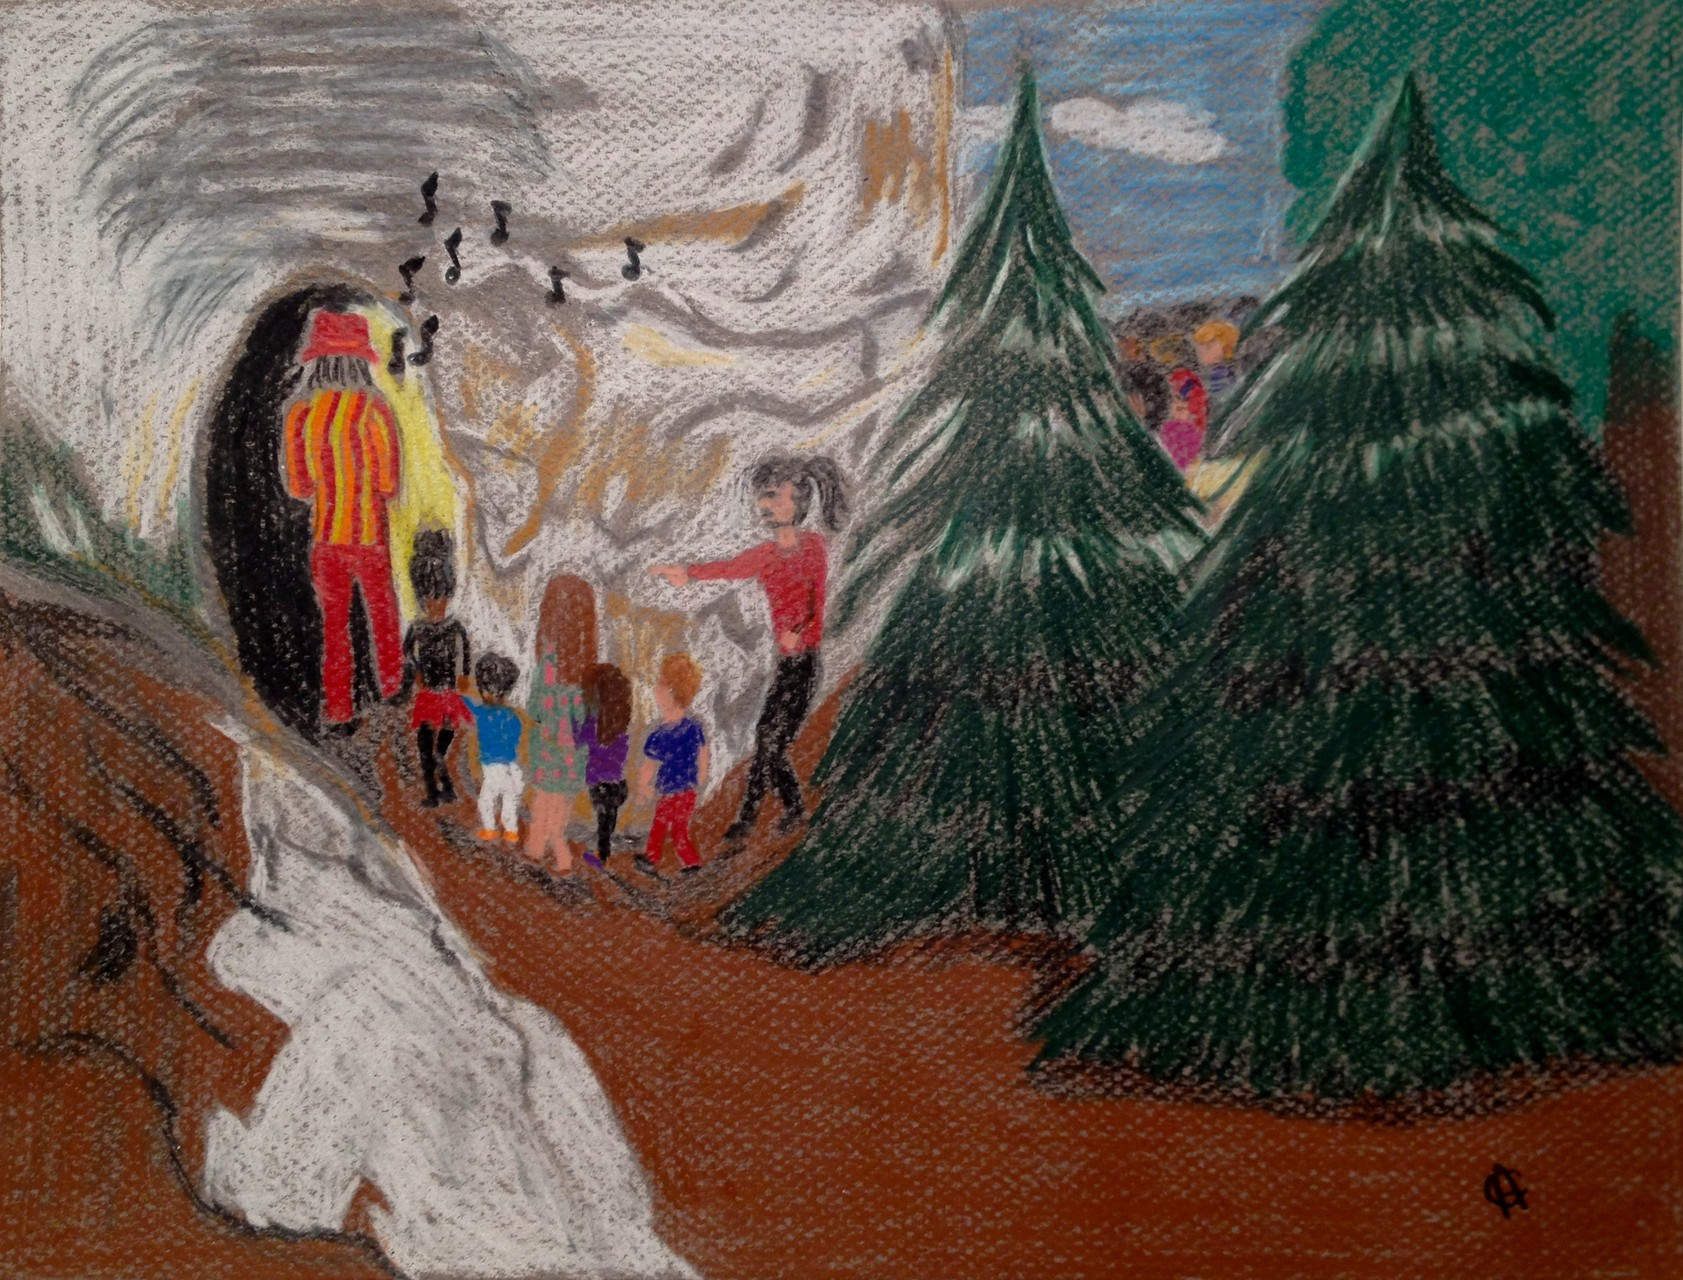 This is an illustration of the Pied Piper as depicted in the story leading the children into a cave to never be seen again. Illustrated with colored pencils on Canson Me-Teintes paper. 12/14